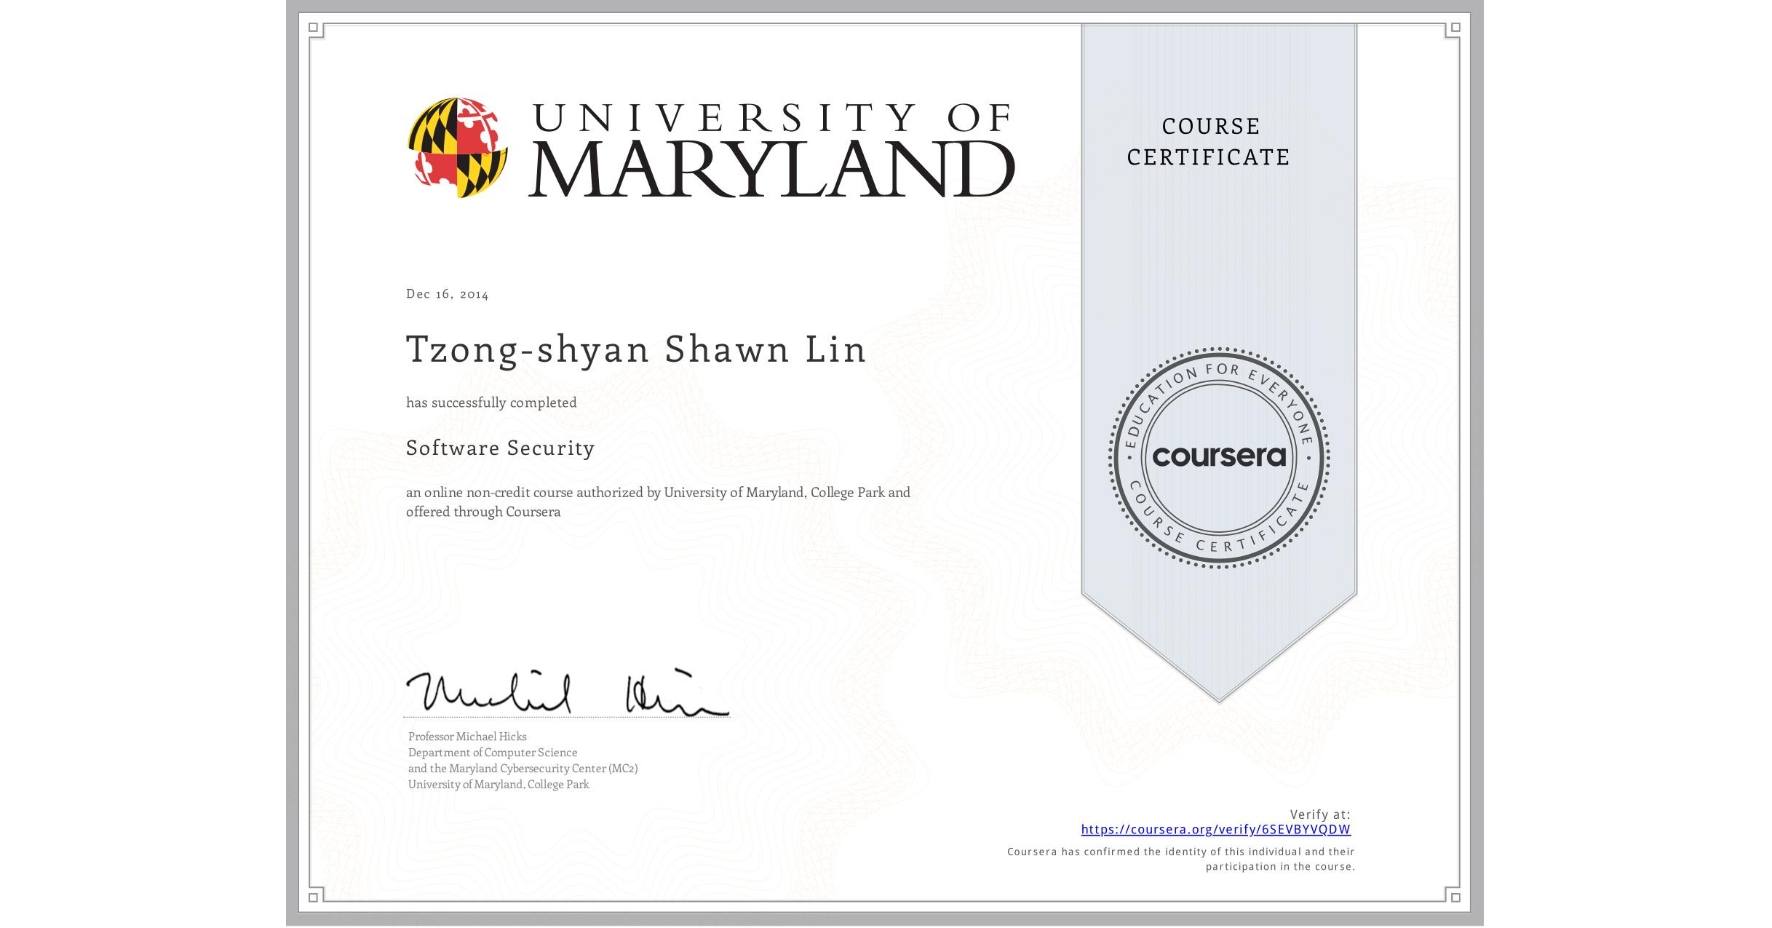 View certificate for Tzong-shyan Shawn Lin, Software Security , an online non-credit course authorized by University of Maryland, College Park and offered through Coursera